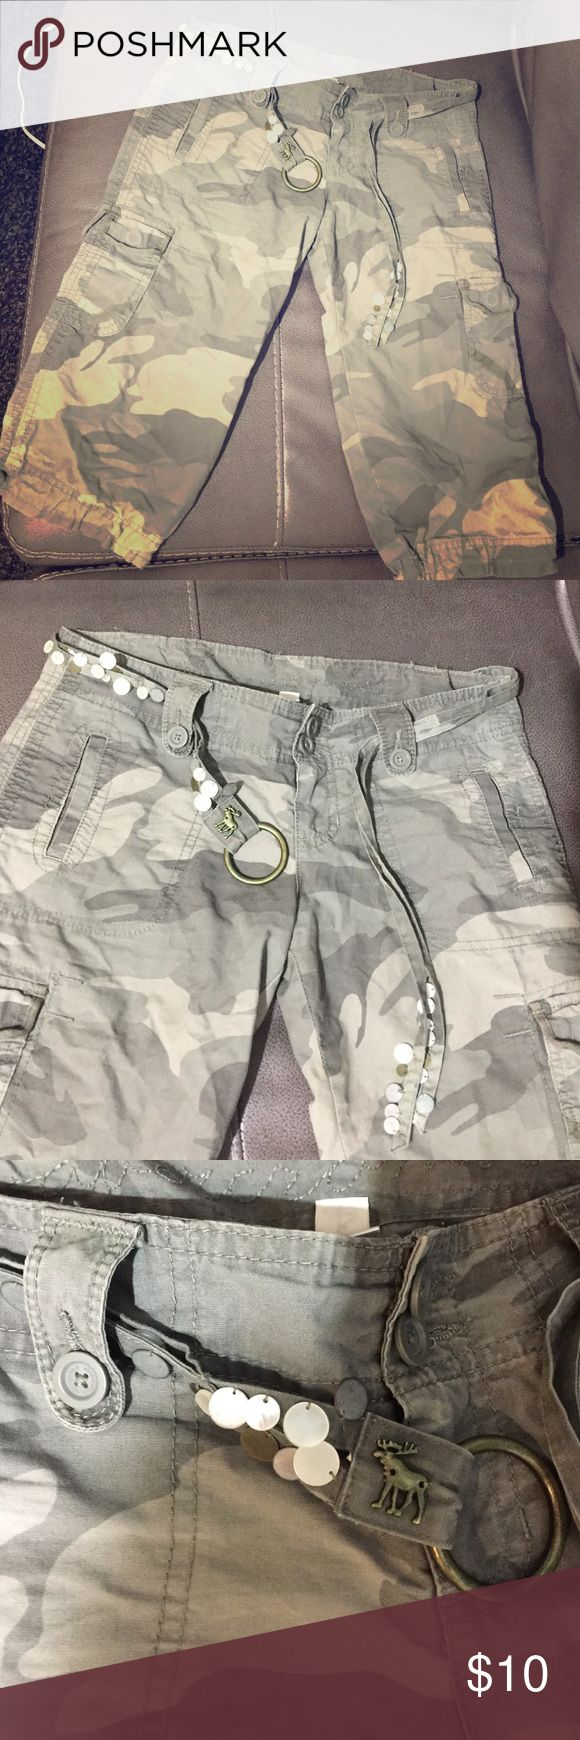 Army Bermuda shorts These army shorts hug the booty!🤗They look so good with wedges 😍 Abercrombie & Fitch Shorts Cargos